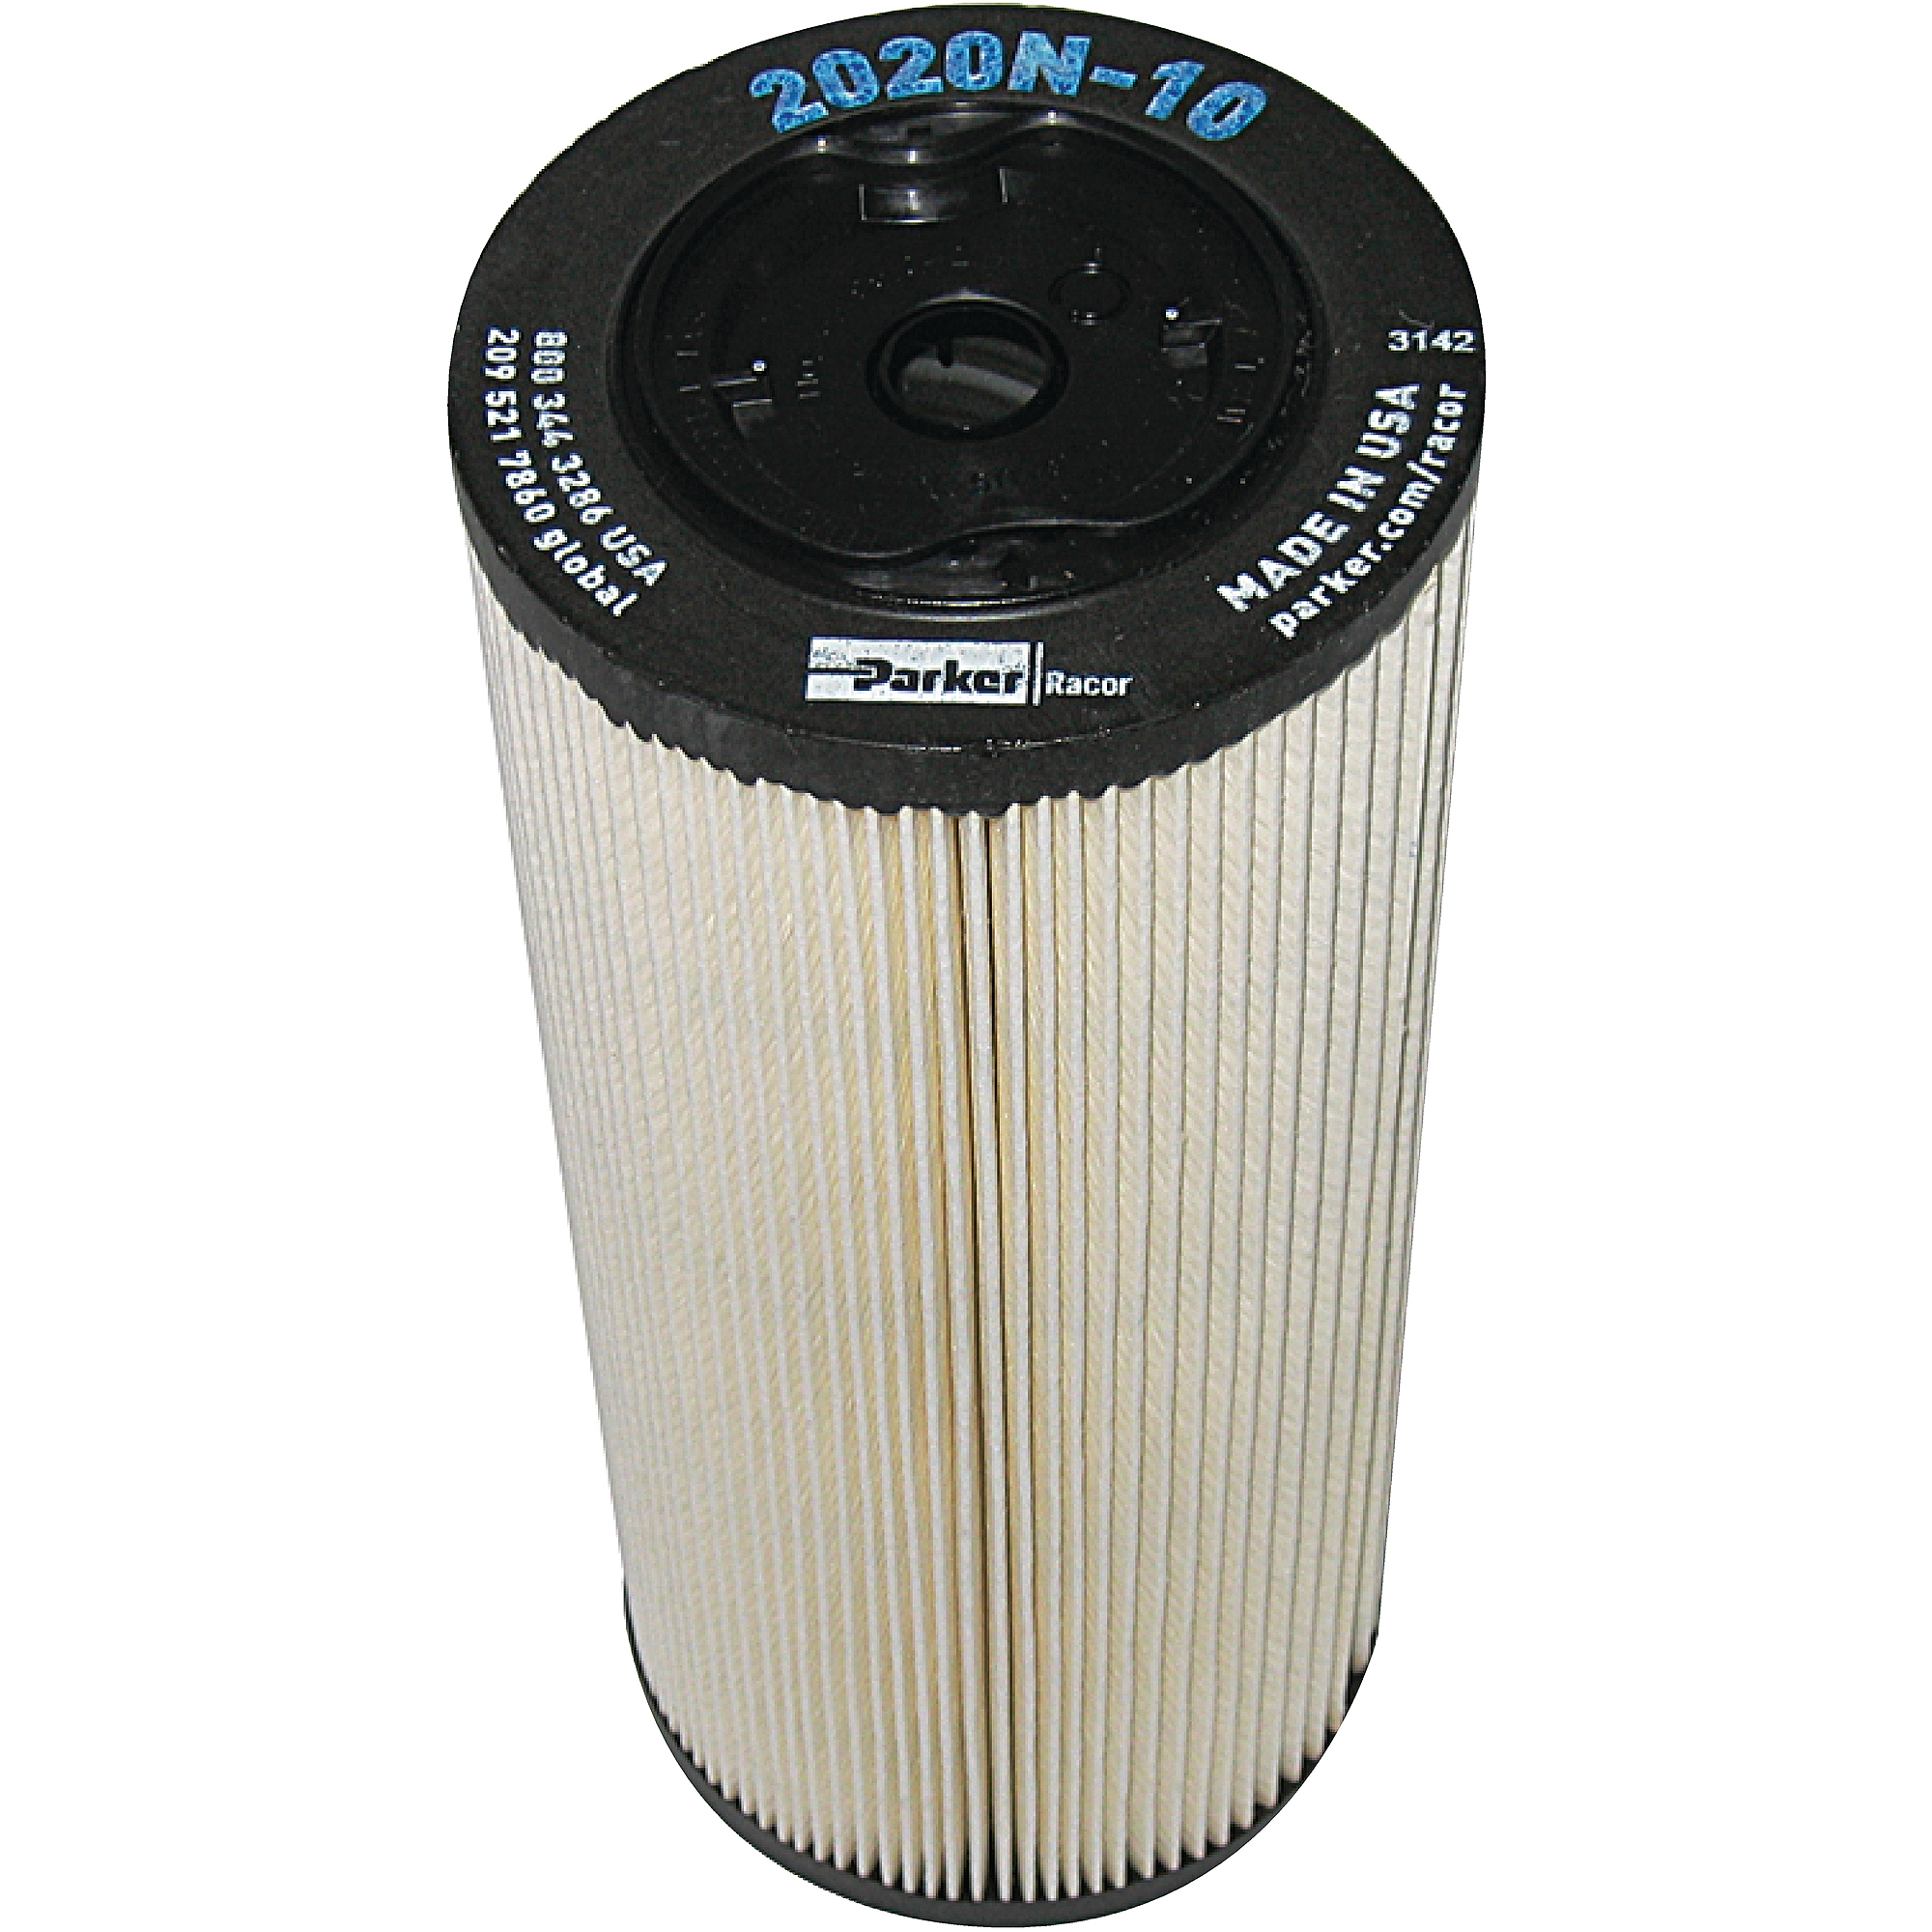 hight resolution of racor replacement element for turbine fuel filter water seperators walmart com